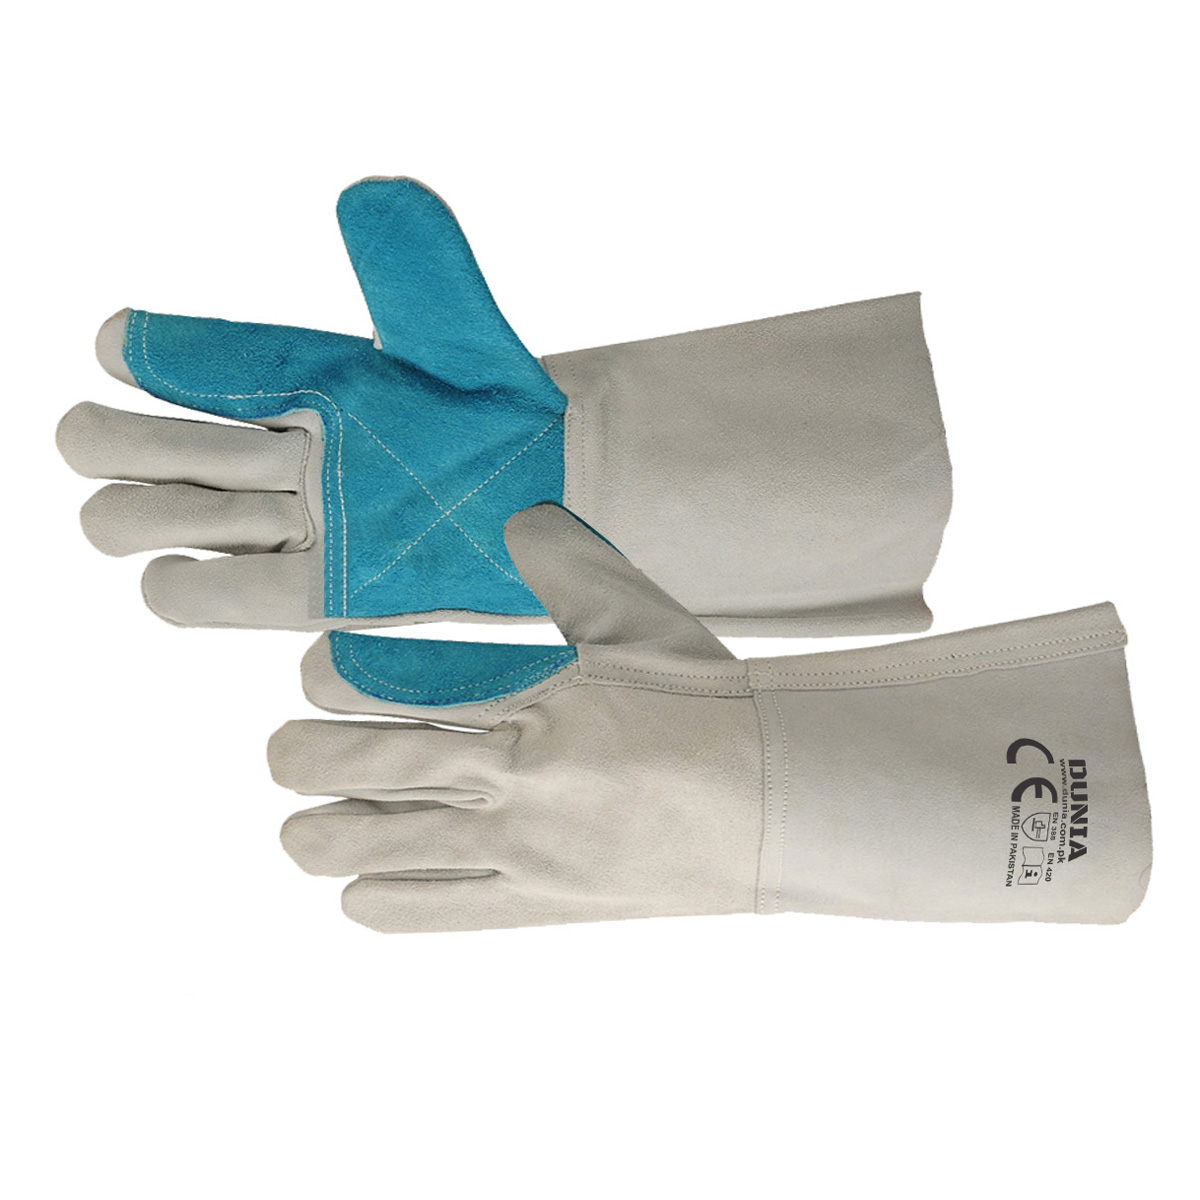 DTC-732 Gunn Palm Welder Gloves